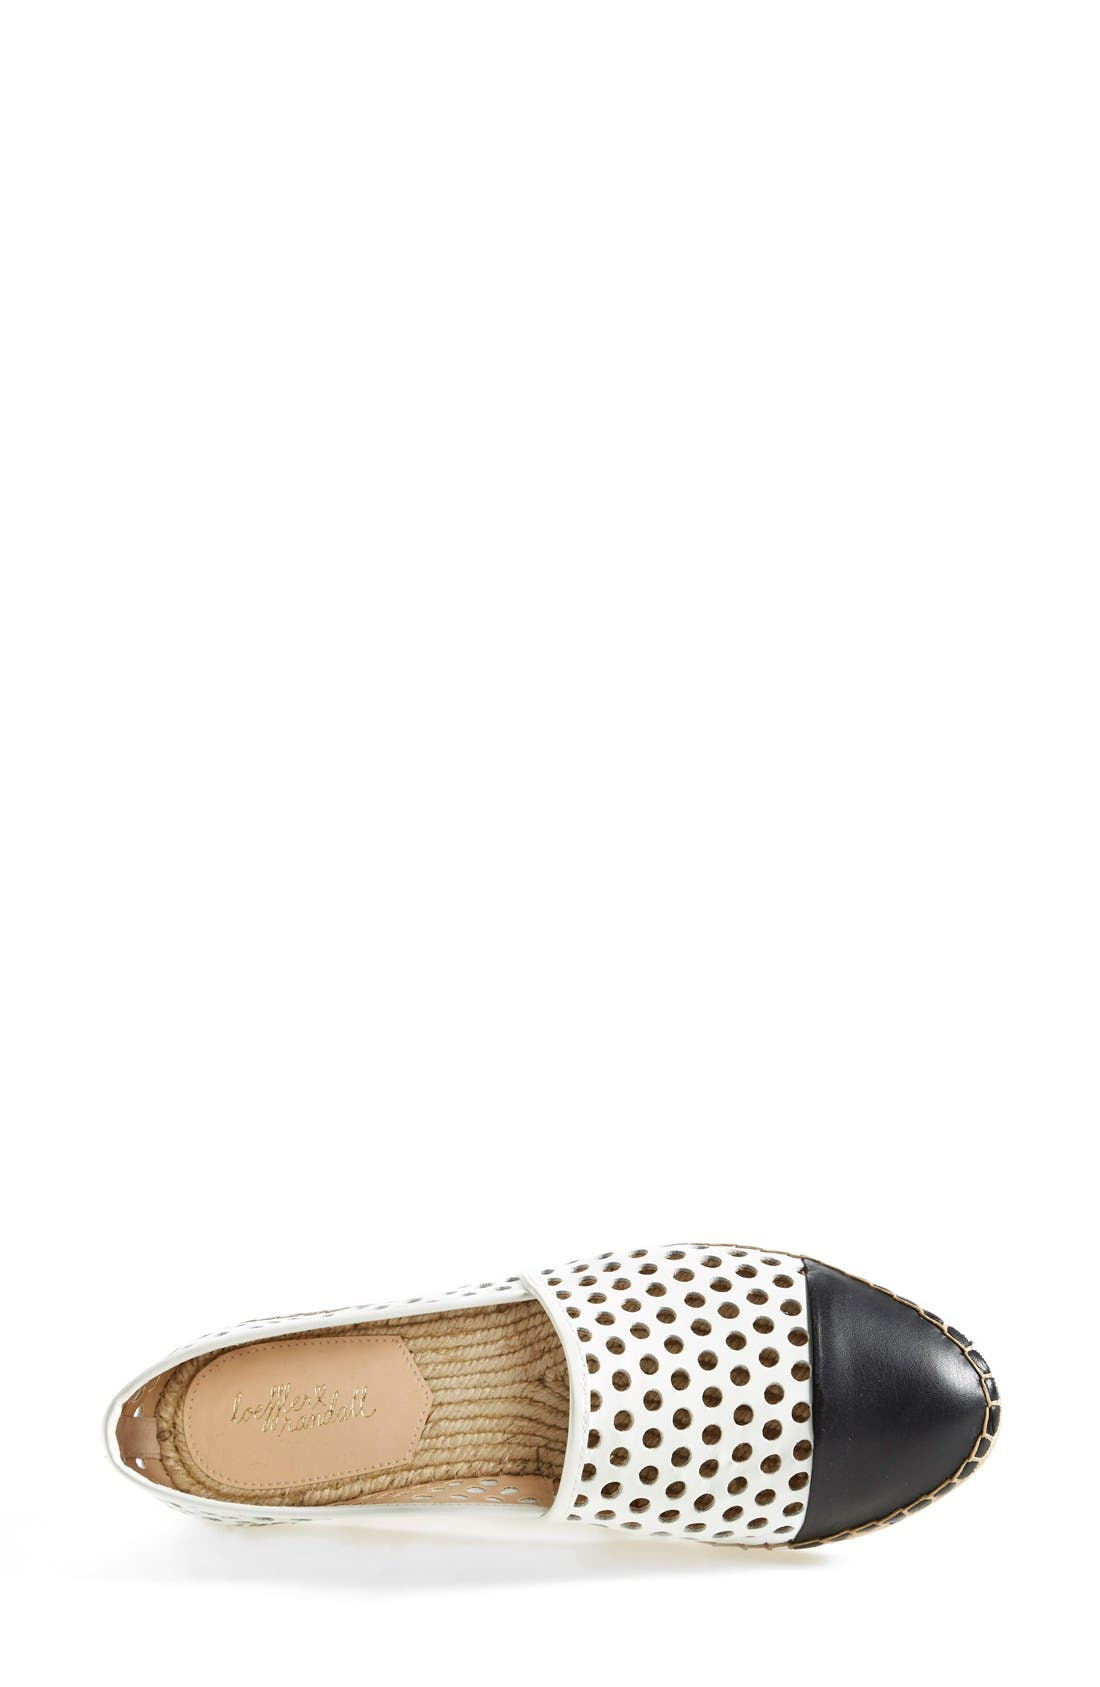 'Mara' Espadrille Flat,                             Alternate thumbnail 2, color,                             100